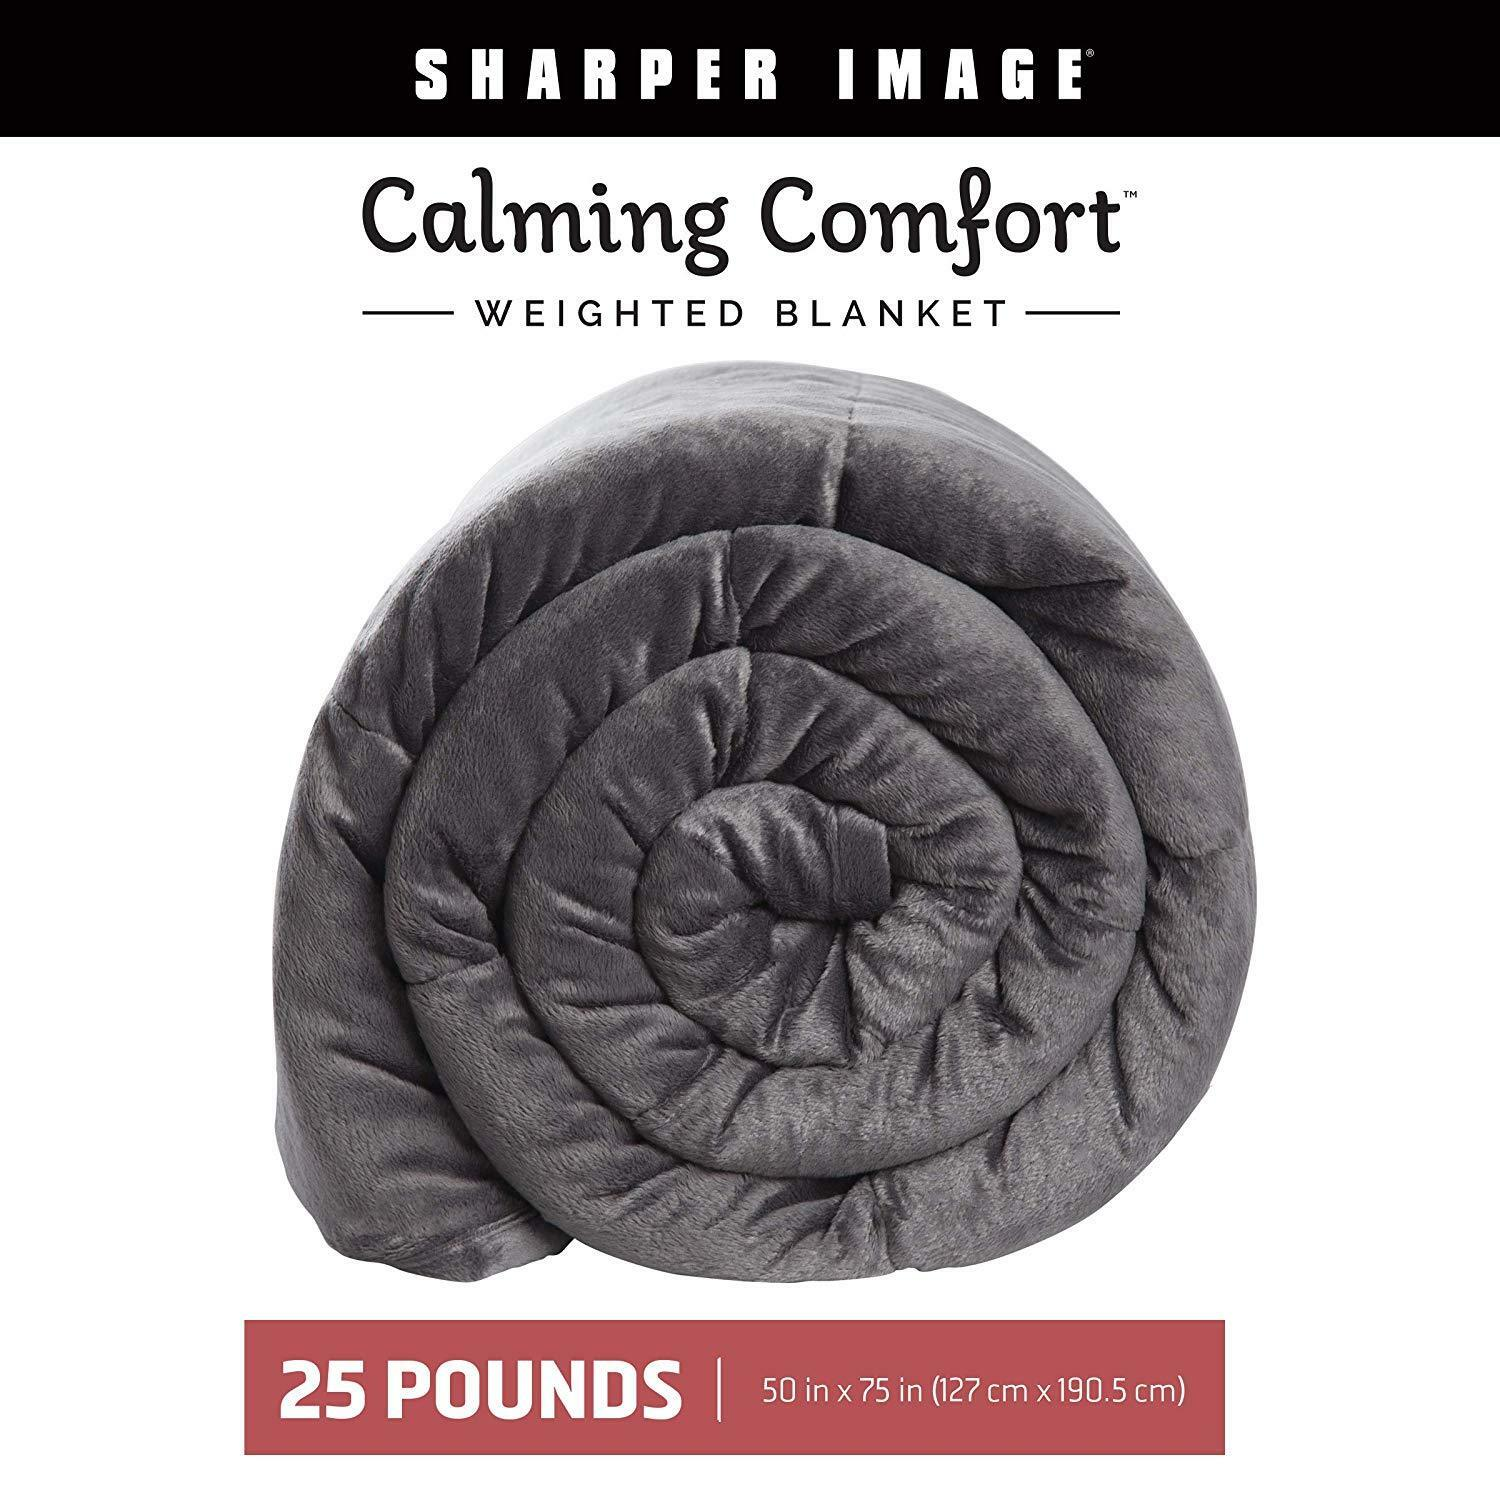 Calming Comfort By Sharper Image - Grey Weighted Blanket - 25 lbs